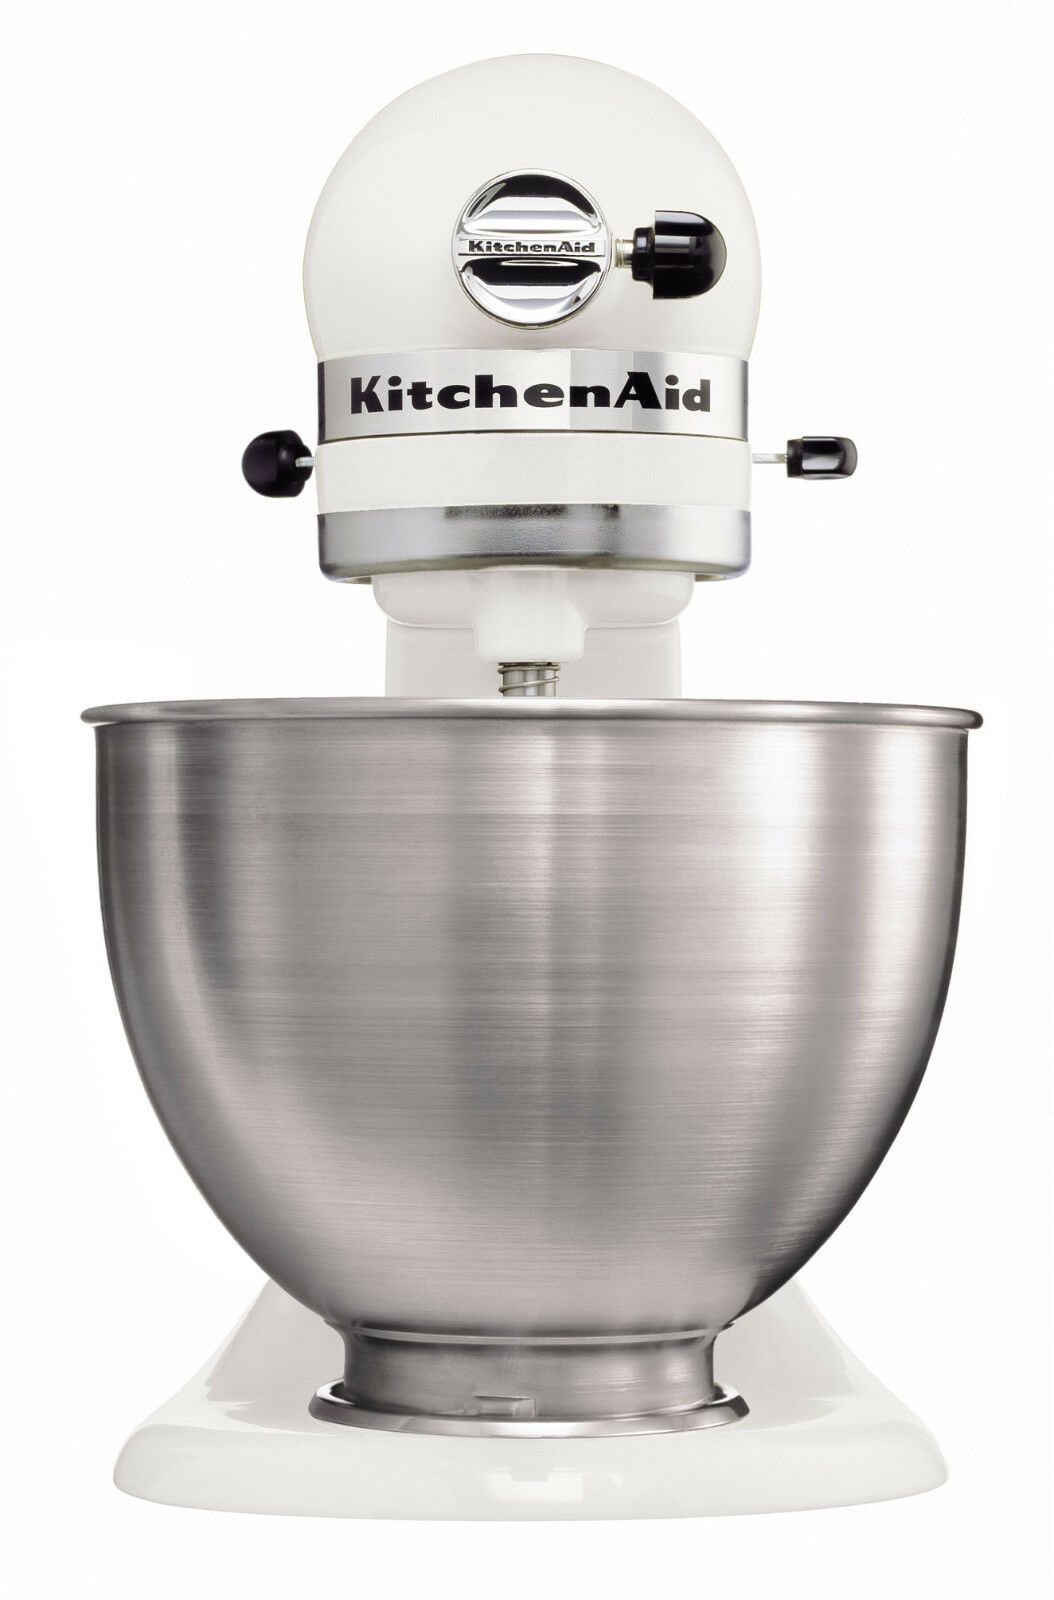 kitchenaid k chenmaschine 5k45ssewh classic 275 watt nur in weiss eur 289 00 picclick de. Black Bedroom Furniture Sets. Home Design Ideas